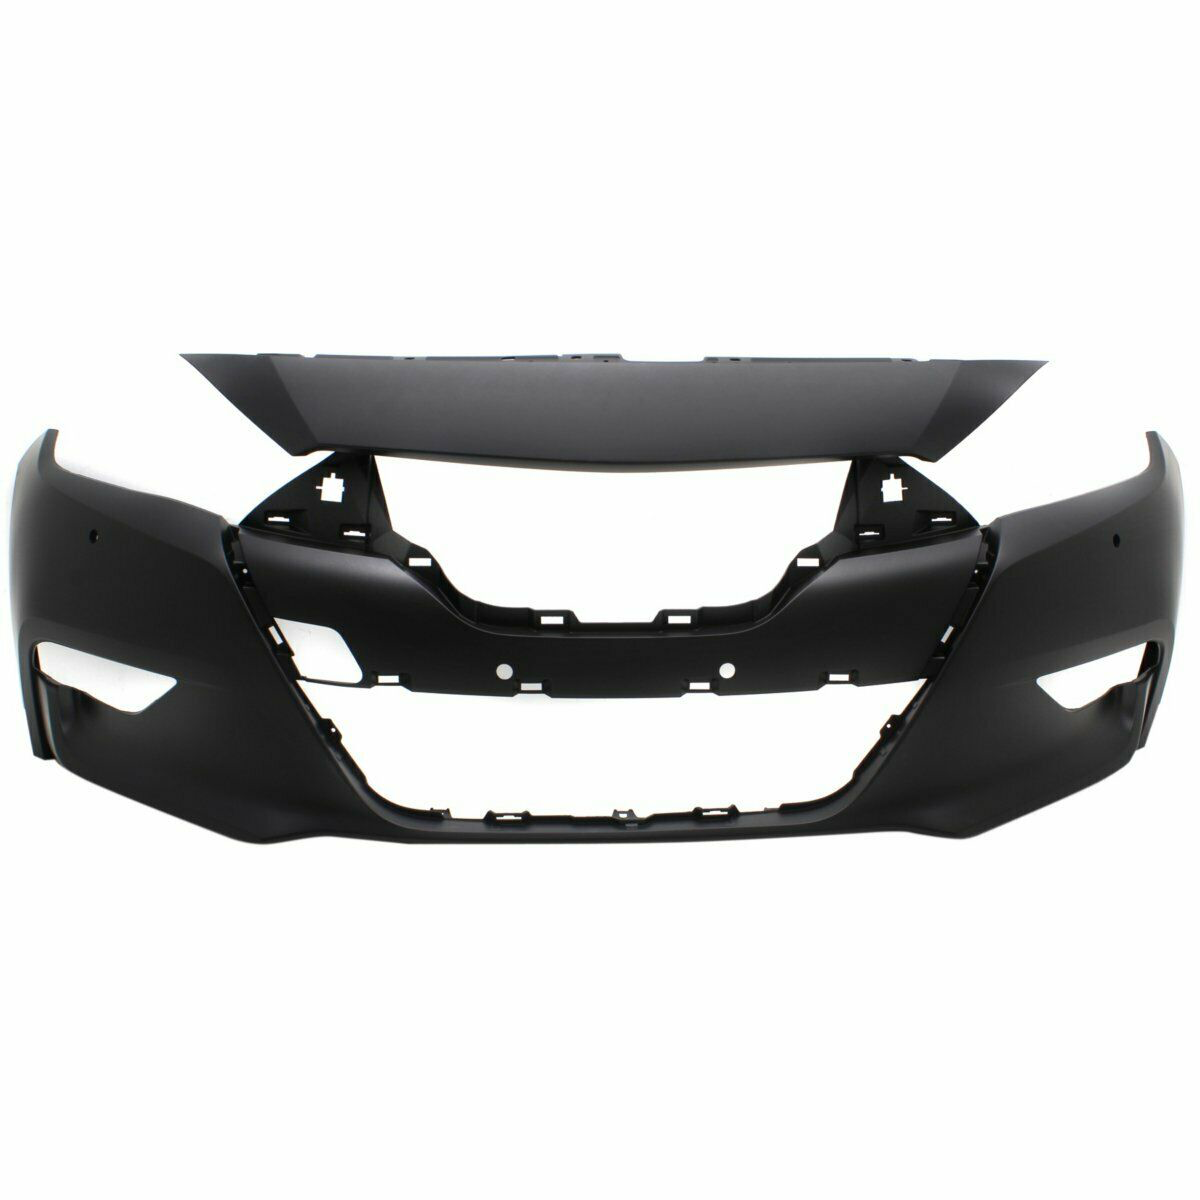 2016-2018 Nissan Maxima Front Bumper Painted to Match